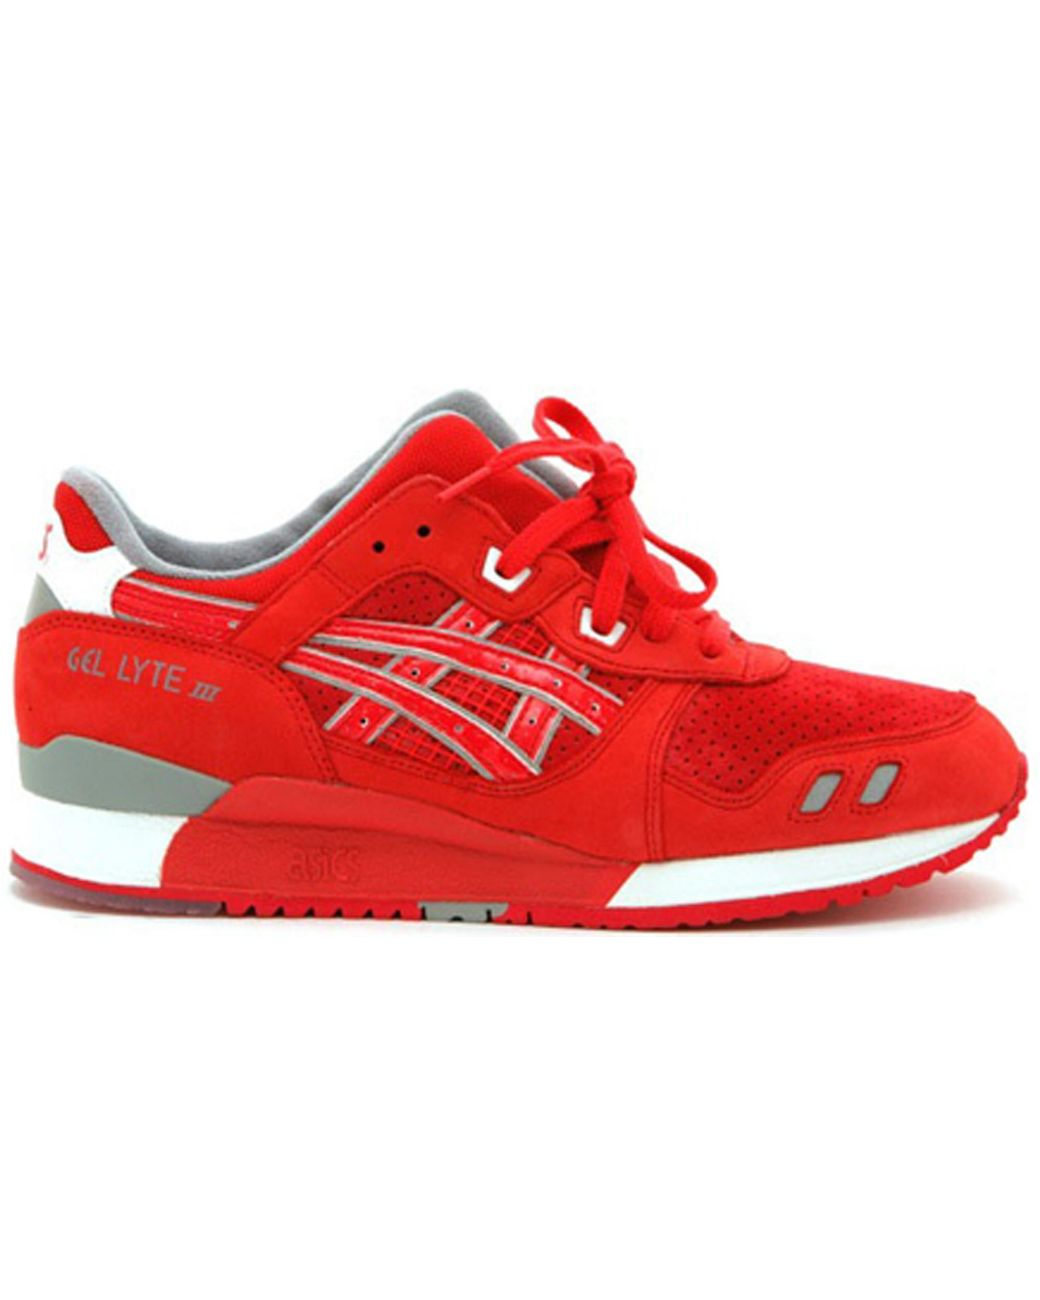 82a0bd24 Asics Gel-lyte Iii Ronnie Fieg X Nice Kicks 1.0 in Red for Men - Lyst